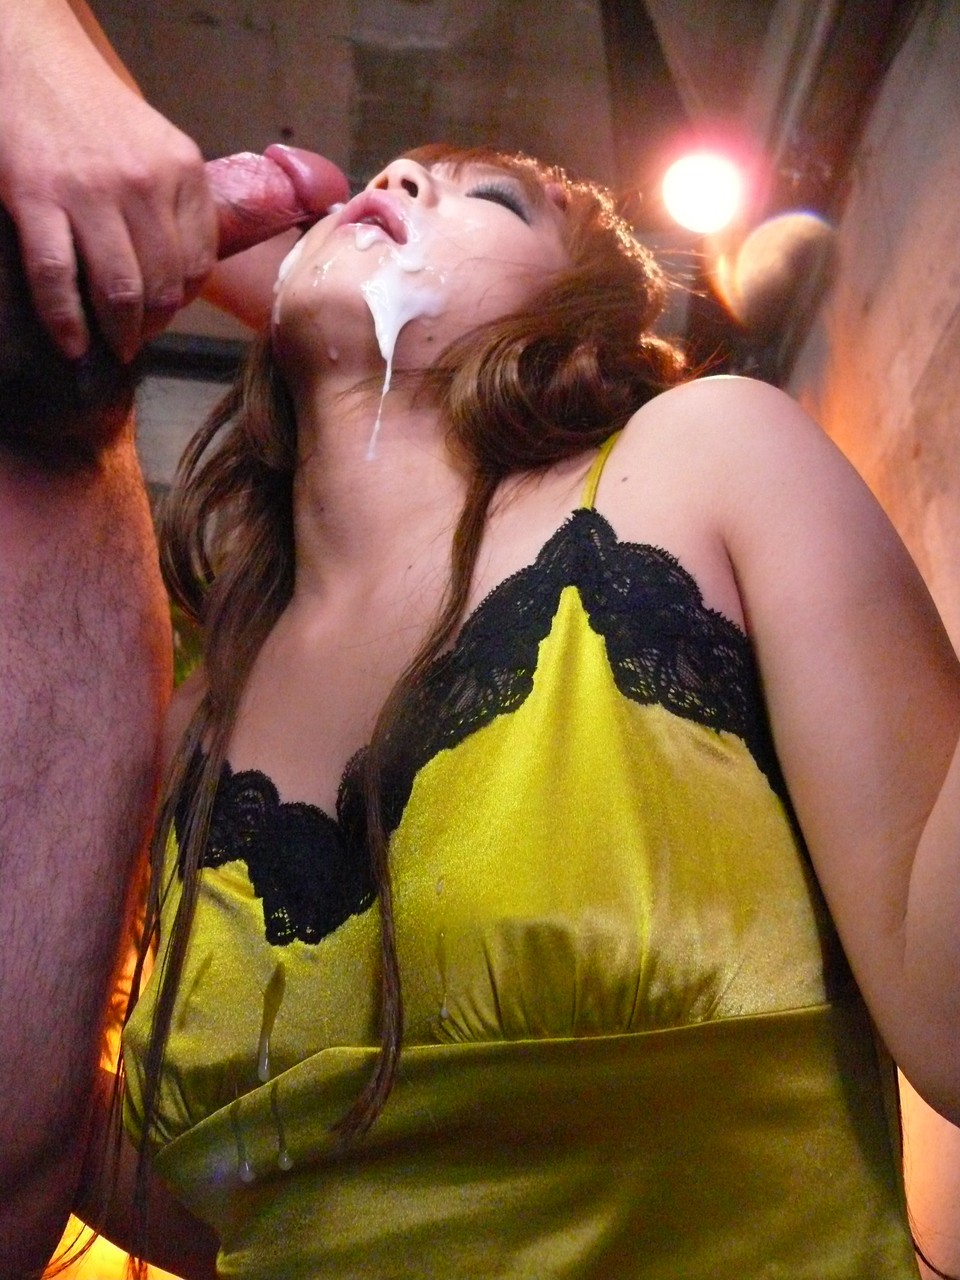 Japanese female Mizuki Ishikawa gets a facial cumshot from 2 guys 色情照片 #422411953 | Japan HD XXX, MIZUKI ISHIKAWA,, 手机色情